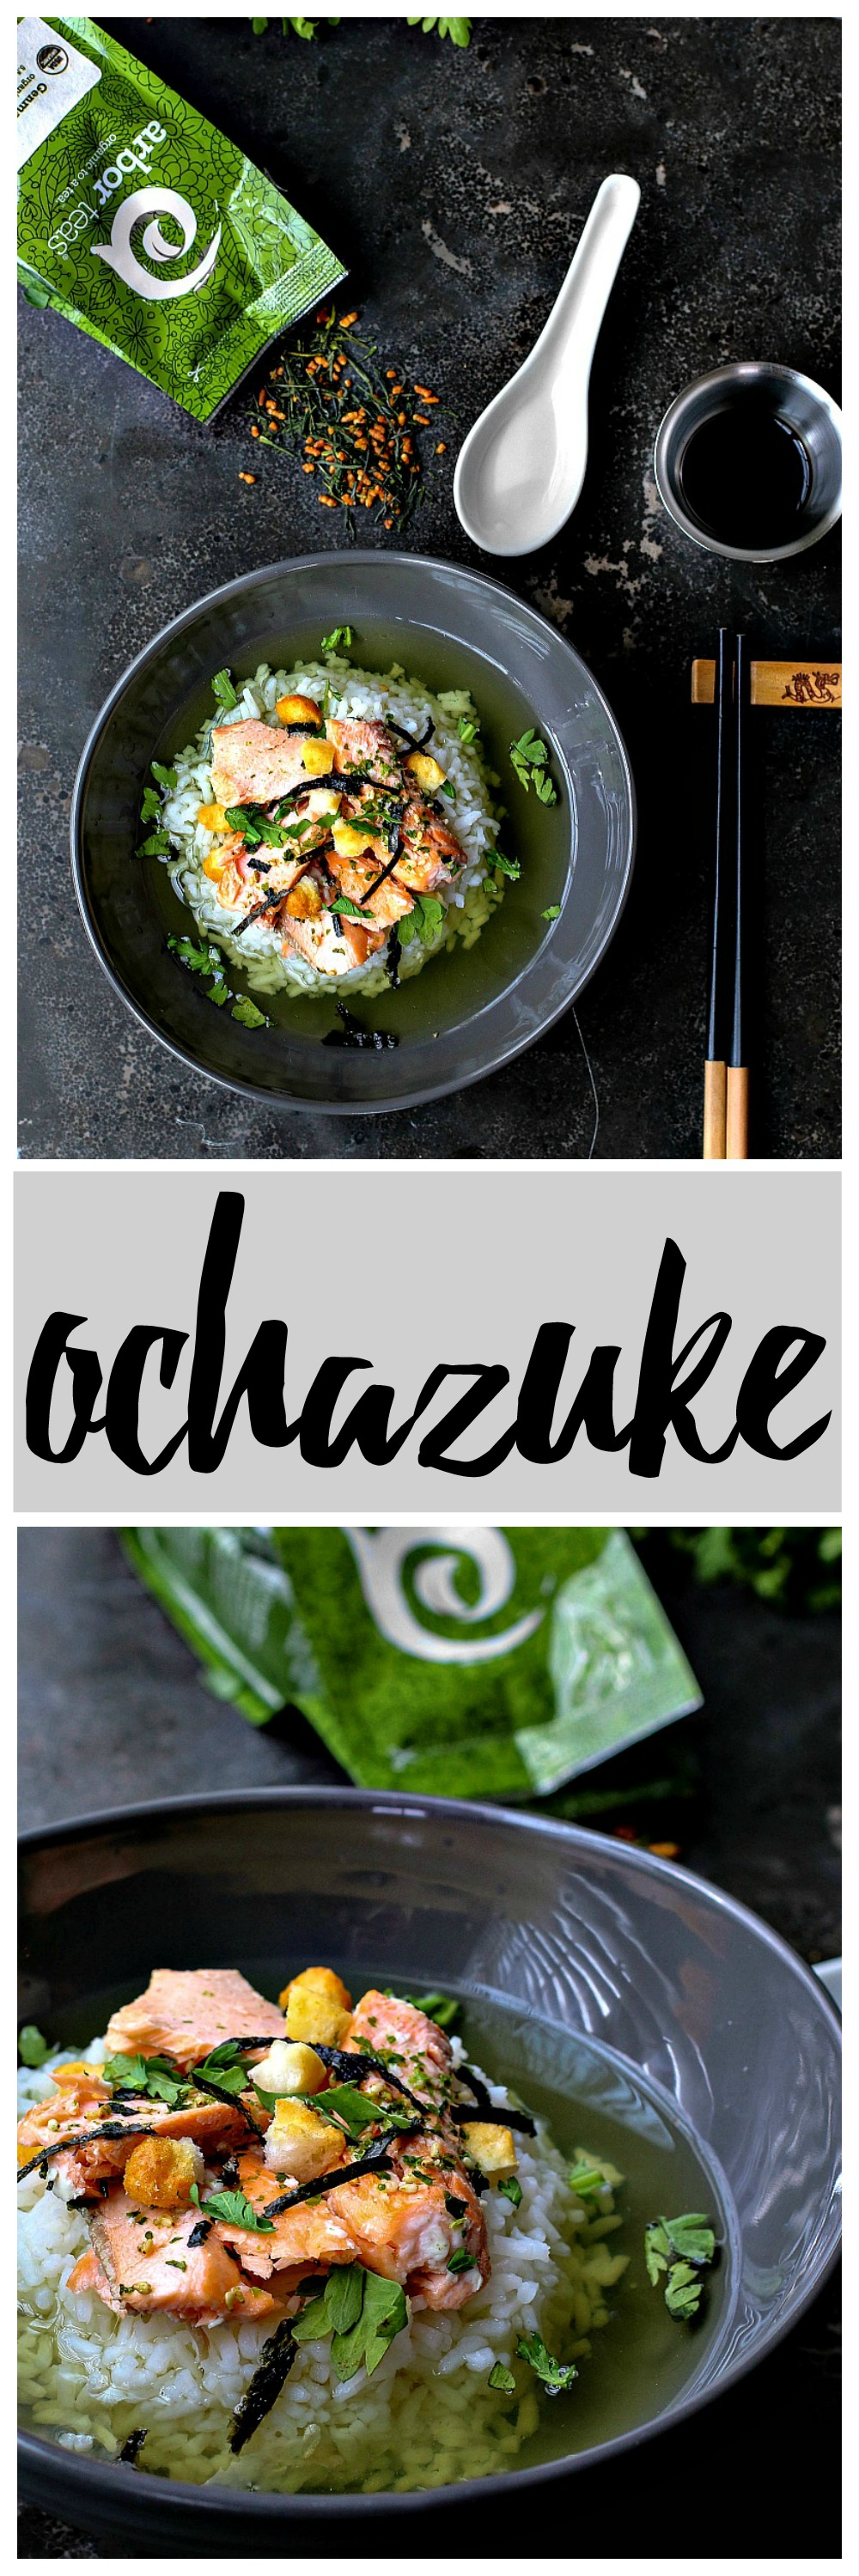 Ochazuke | Killing Thyme — a simple and belly-warming Japanese dish made by pouring green tea over cooked rice, salmon, and rice puffs.